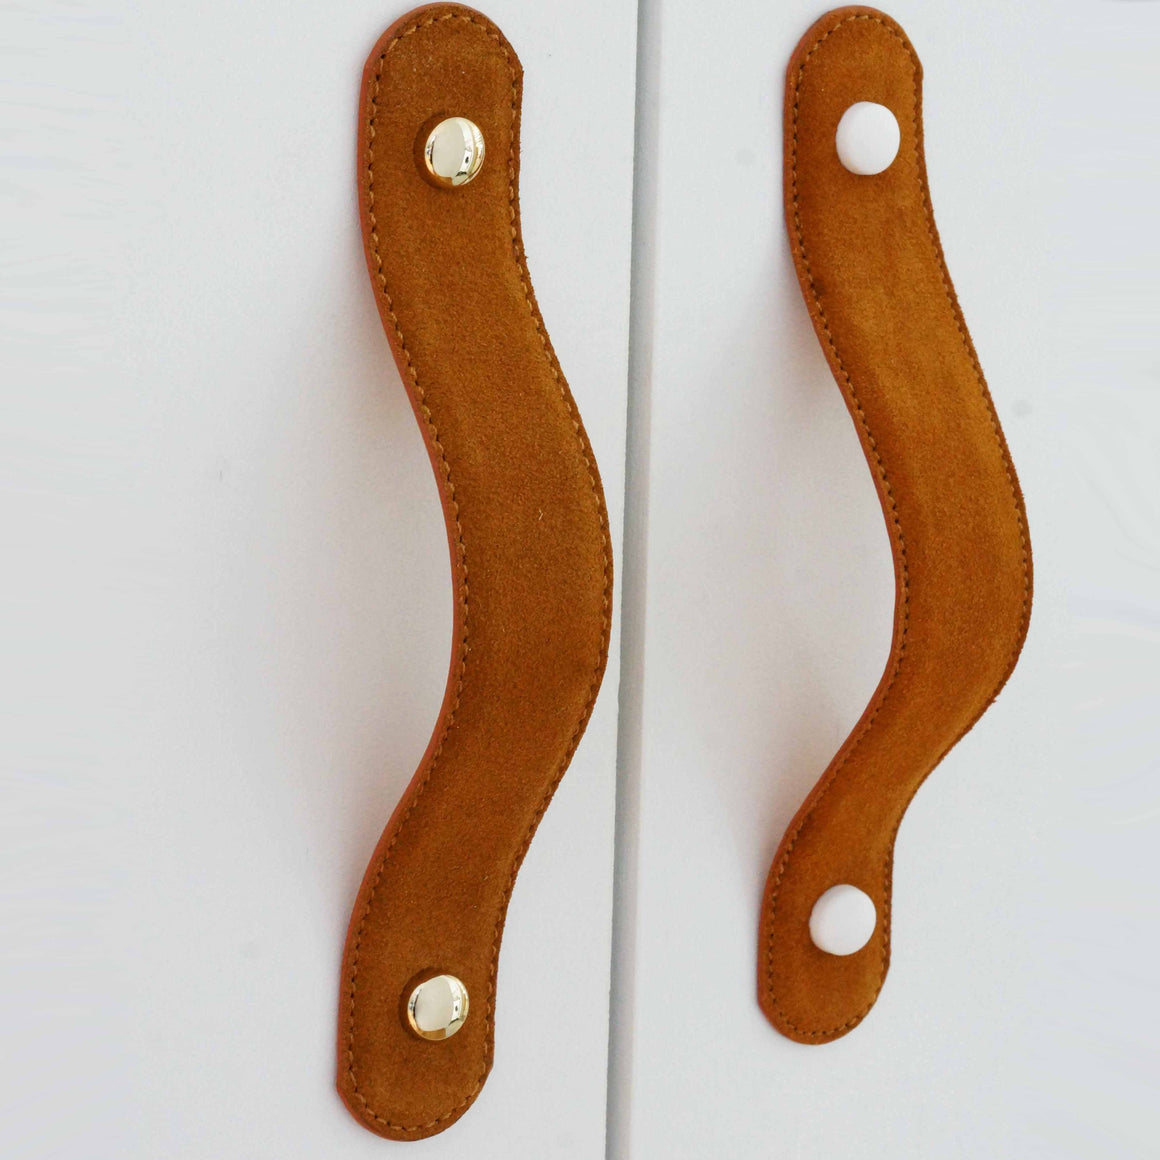 Suede Handle - Caramel (1pc)